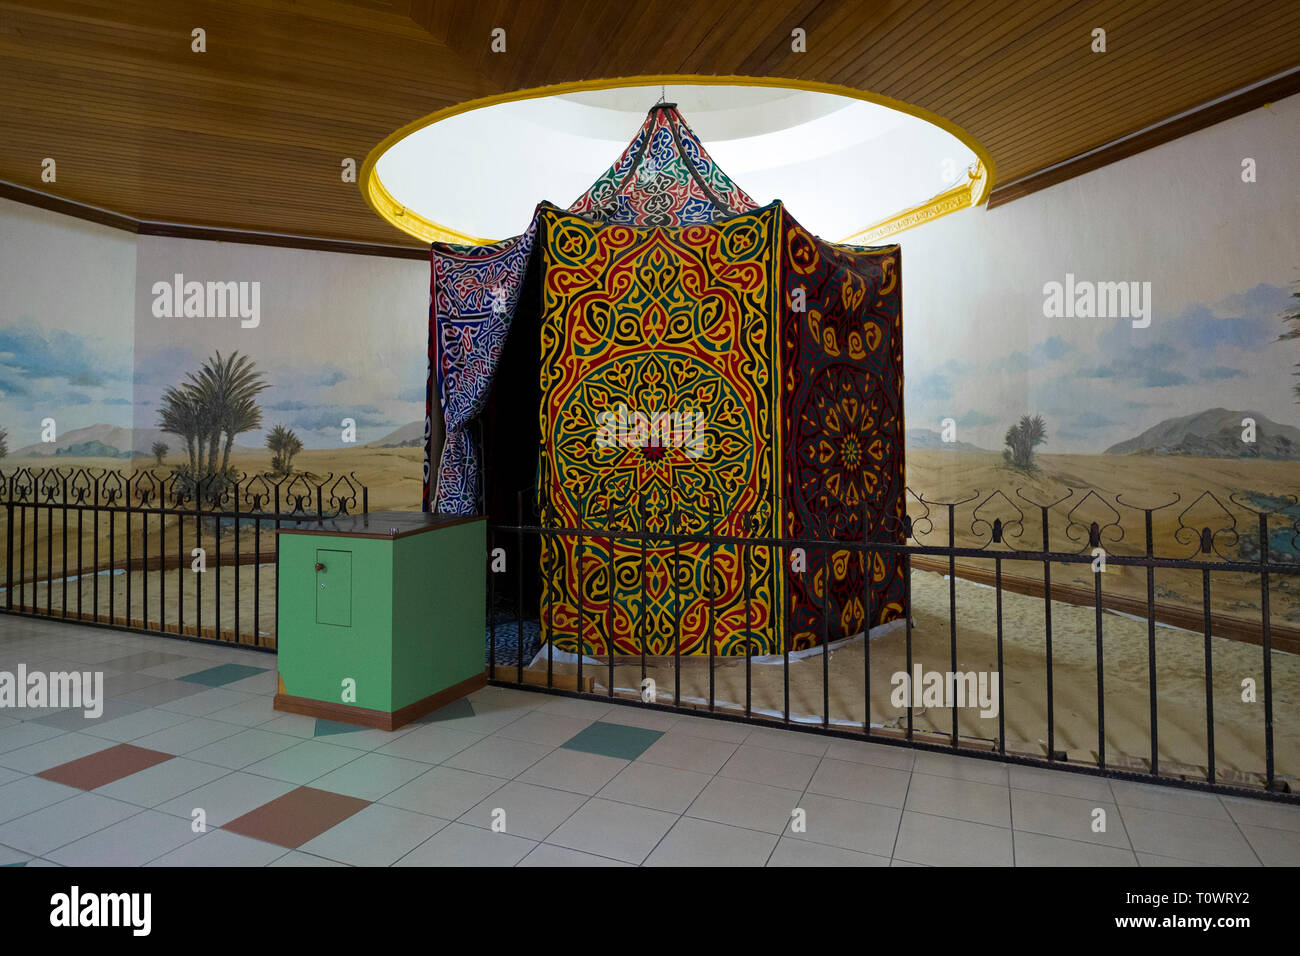 The Islamic Civilization Museum in Kota Kinabalu, Sabah, Borneo, Malaysia. An exhibit of a traditional tent. - Stock Image